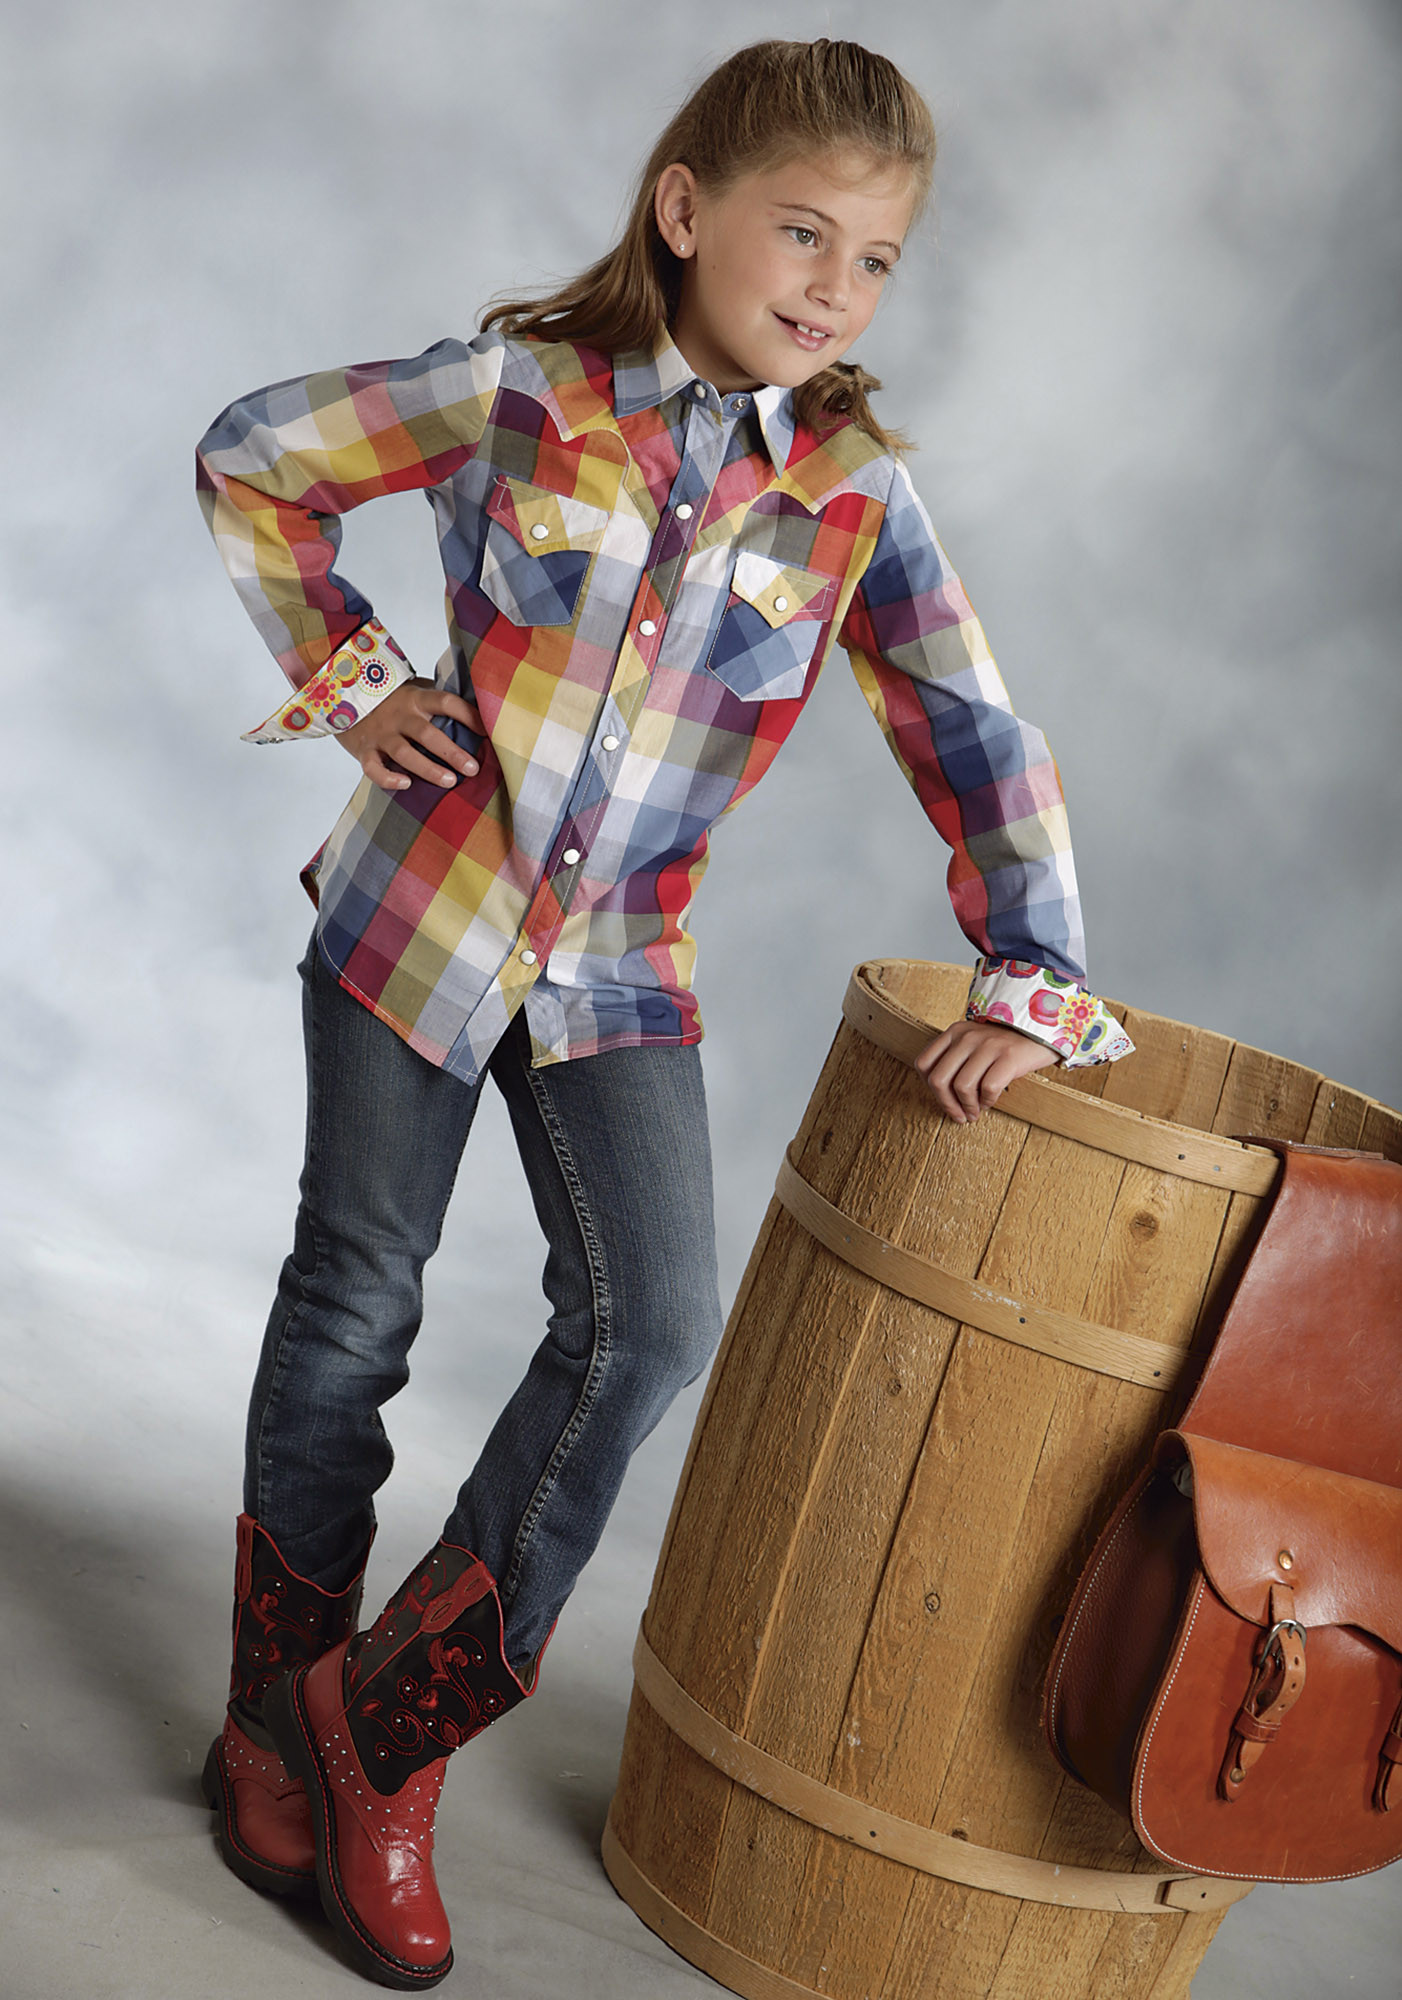 Brigalow kids clothing for girls our girls jeans, childrens belts & girls western shirts are great quality and we ship for FREE Australia wide!